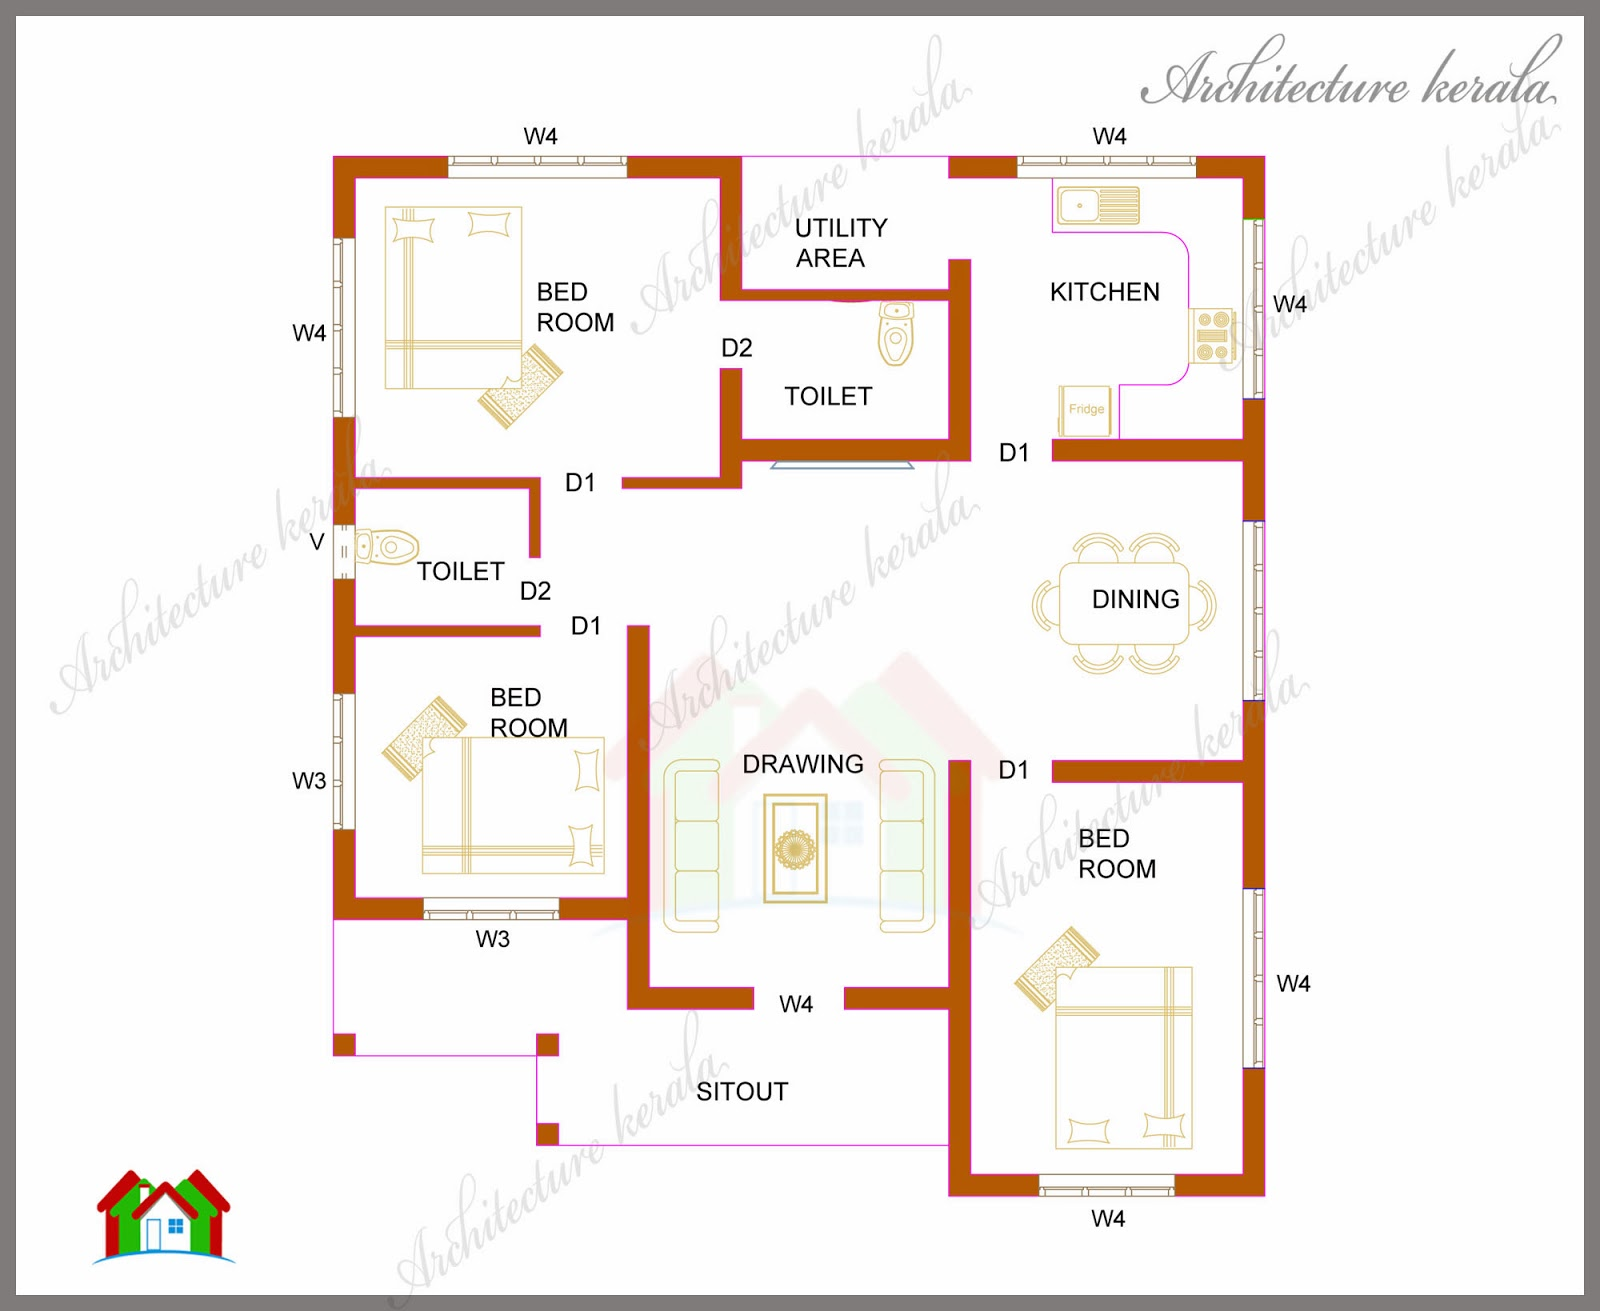 Three bedrooms in 1200 square feet kerala house plan 1200 sq ft house plan indian design